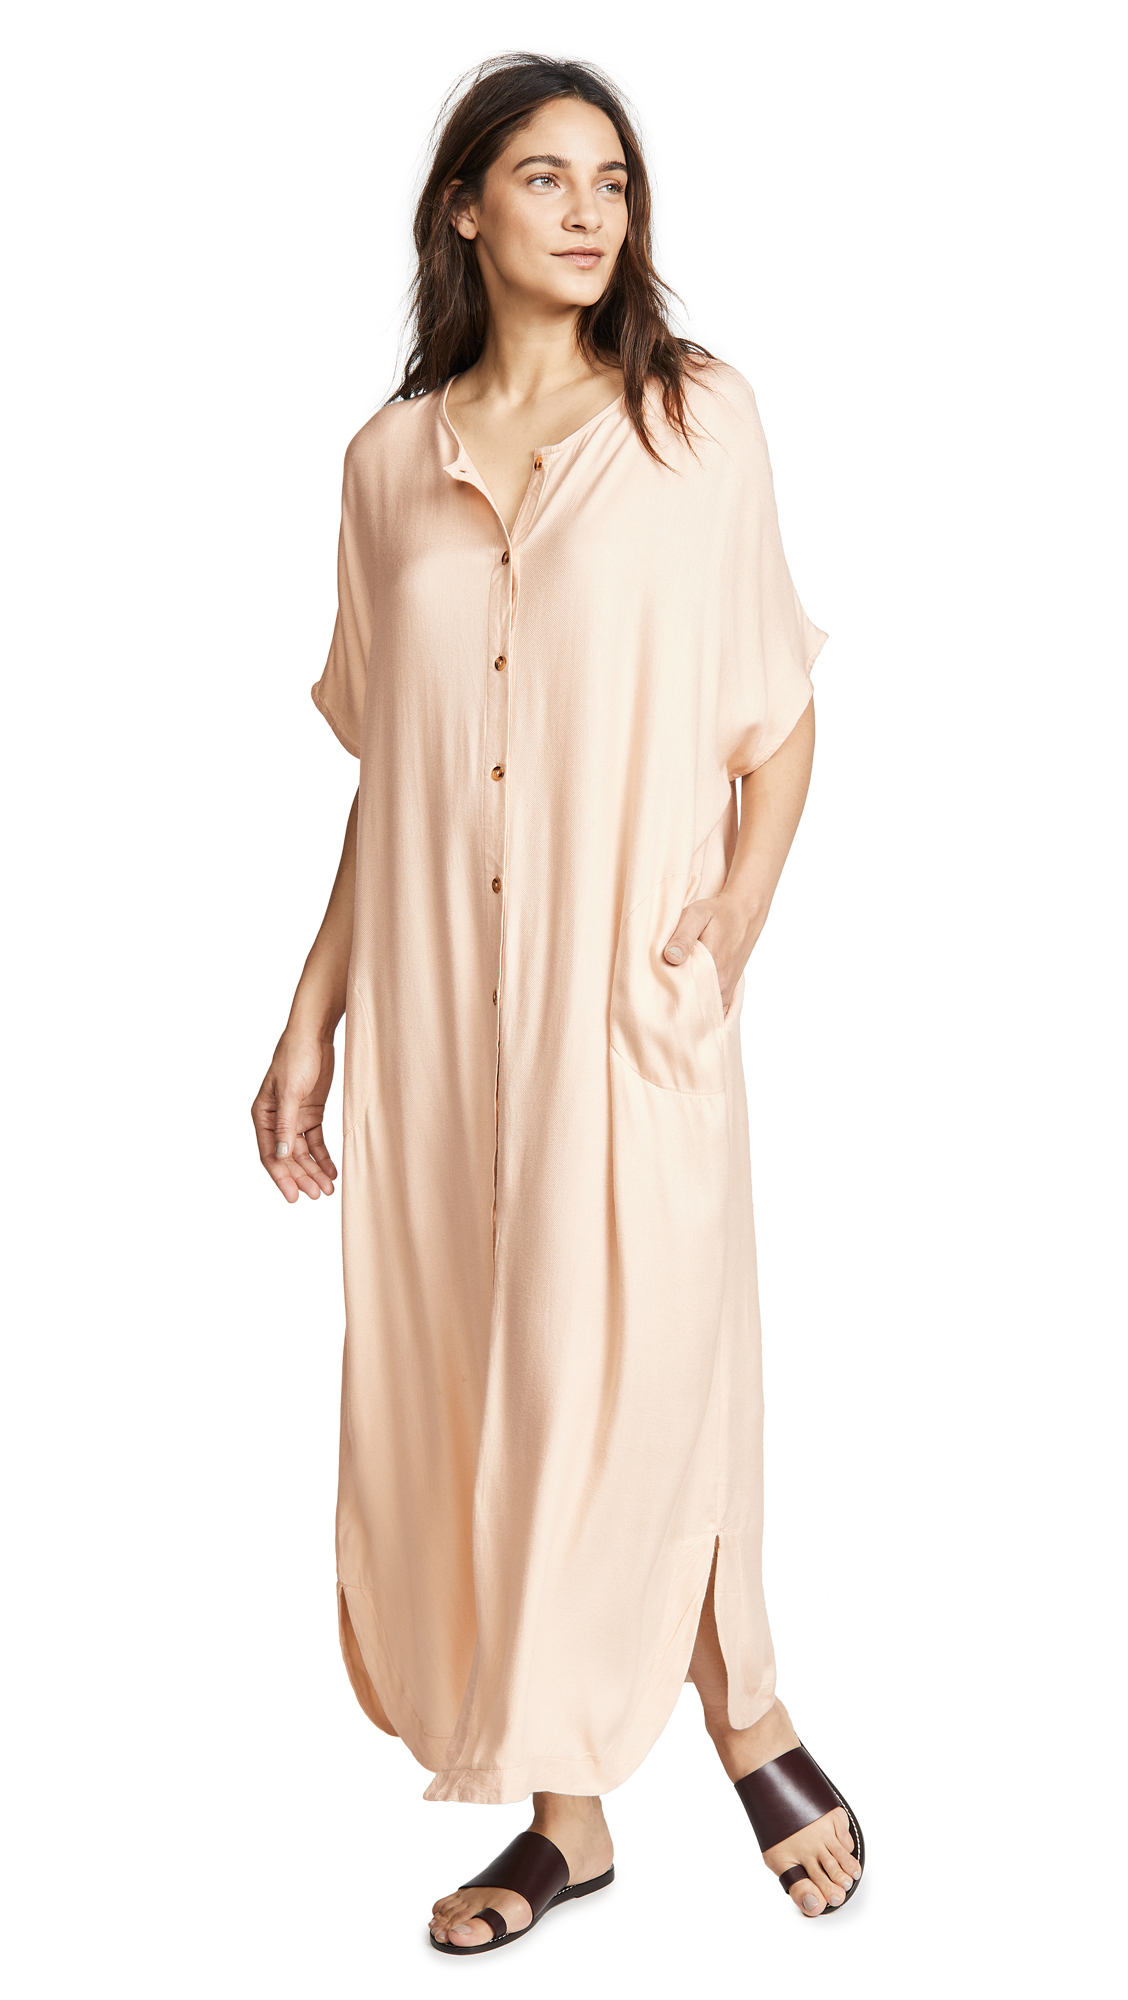 VETIVER Patti Shirt Dress In Ivory